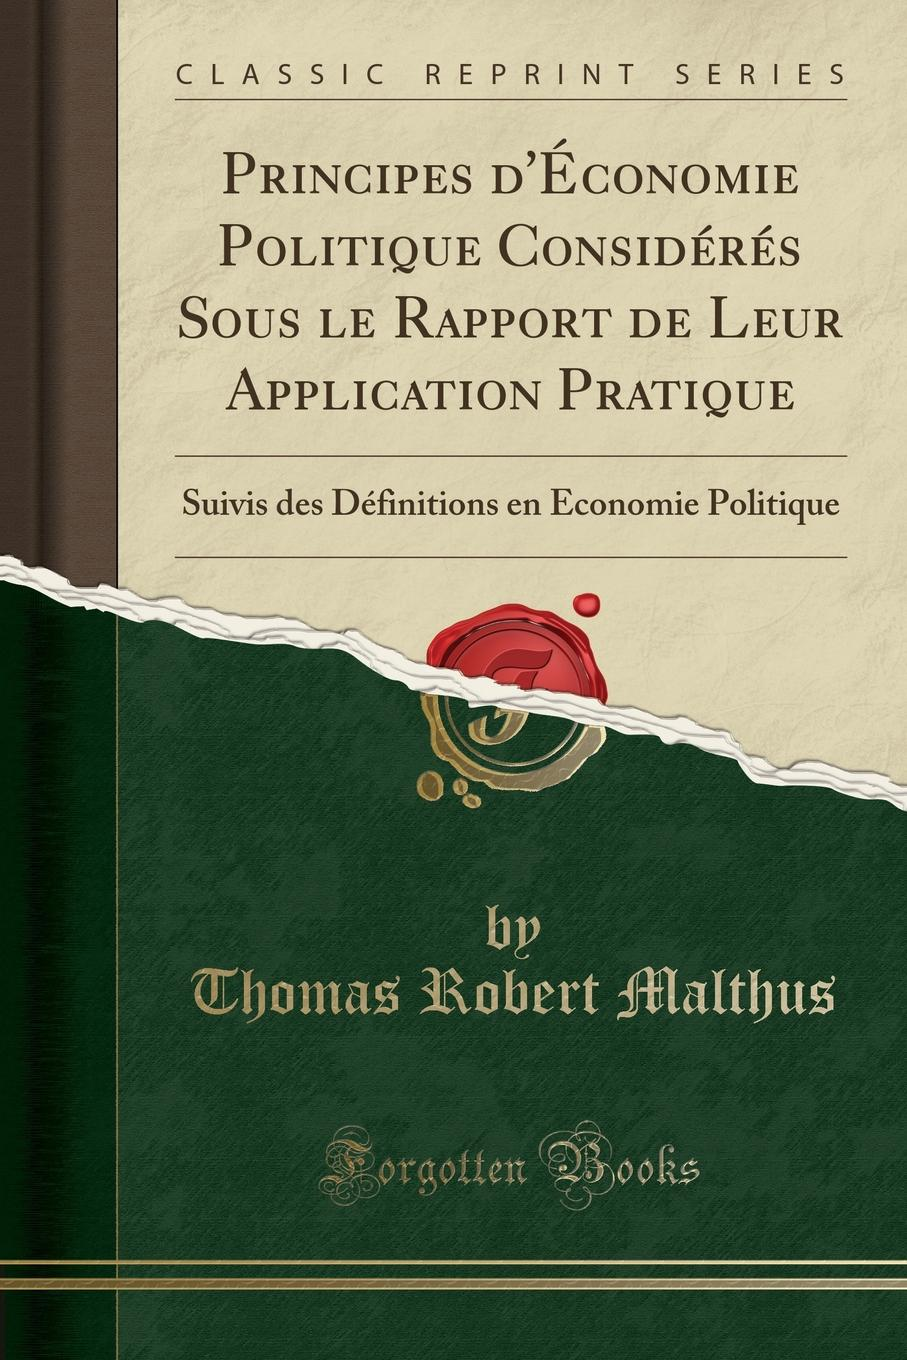 Principes d.Economie Politique Consideres Sous le Rapport de Leur Application Pratique. Suivis des Definitions en Economie Politique (Classic Reprint) Excerpt from Principes d'Р?conomie Politique ConsidР?rР?s Sous...